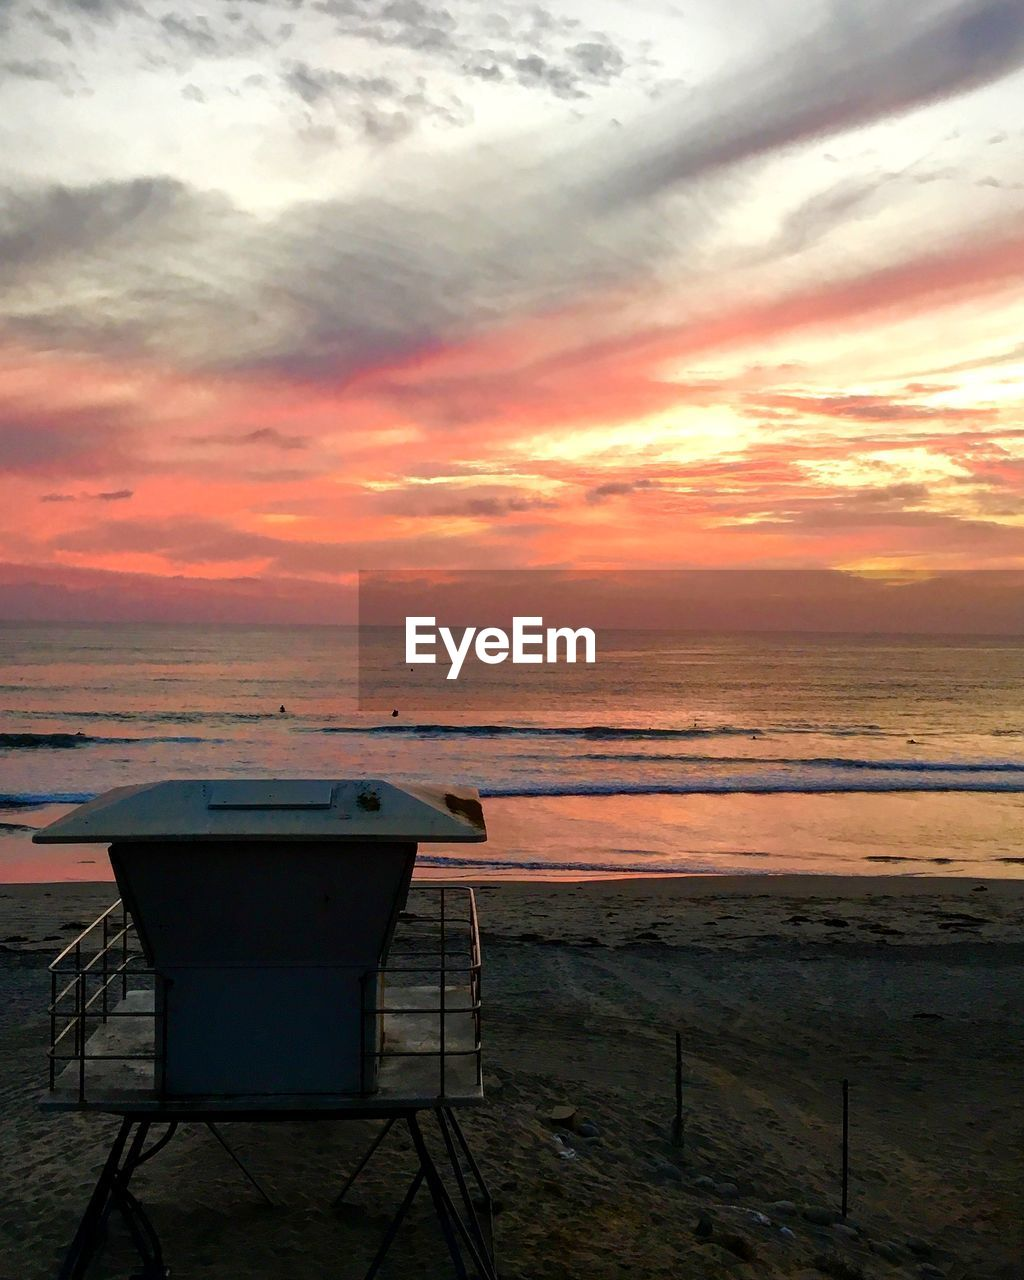 sky, sea, cloud - sky, sunset, water, horizon over water, beauty in nature, scenics - nature, horizon, beach, orange color, land, nature, tranquility, tranquil scene, no people, seat, chair, table, outdoors